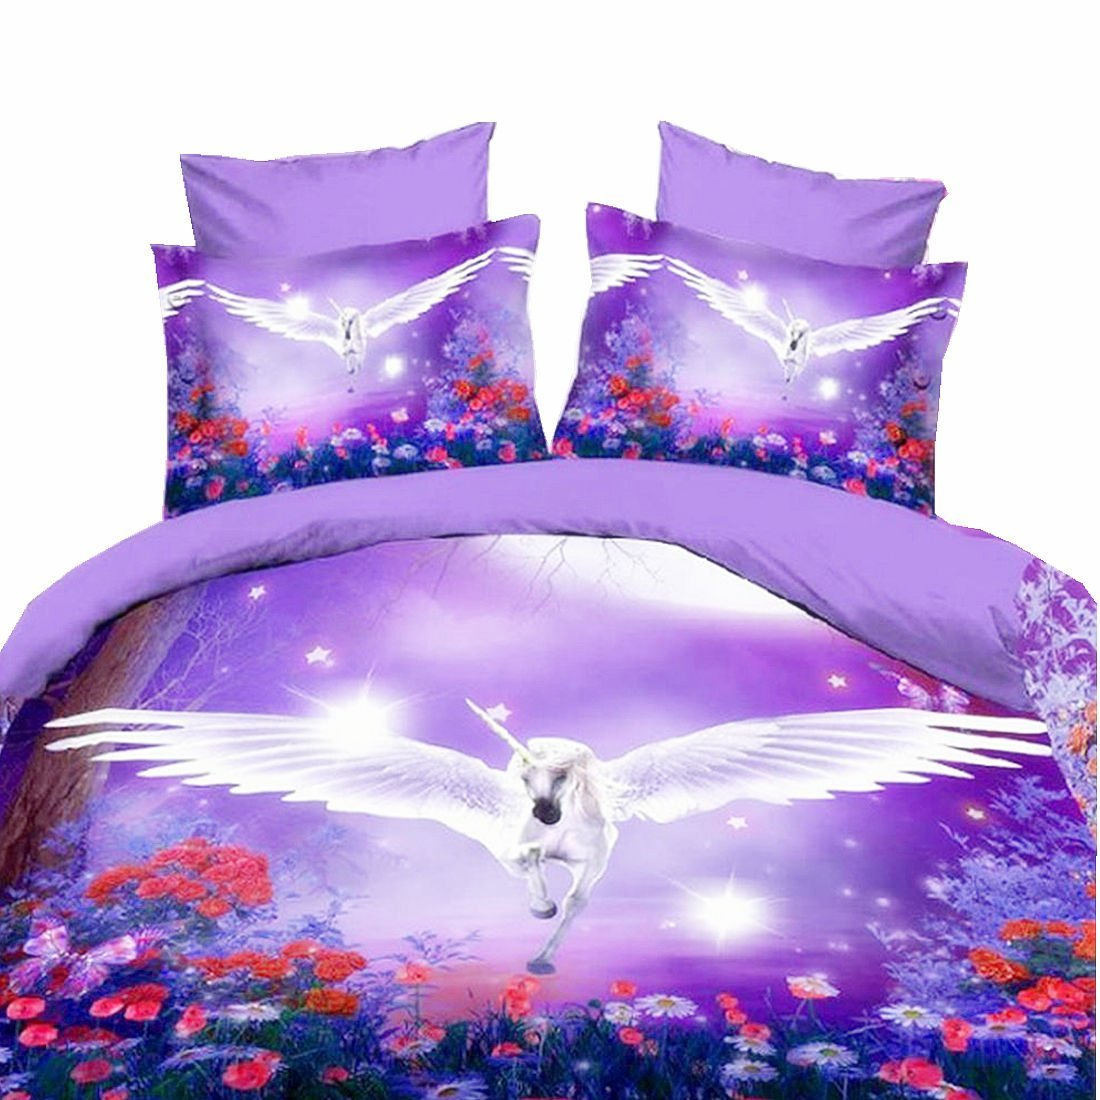 WARM TOUR 4PCS Purple Flying Unicorn 3D Bedding Sets 4 Piece Duvet Cover Sets